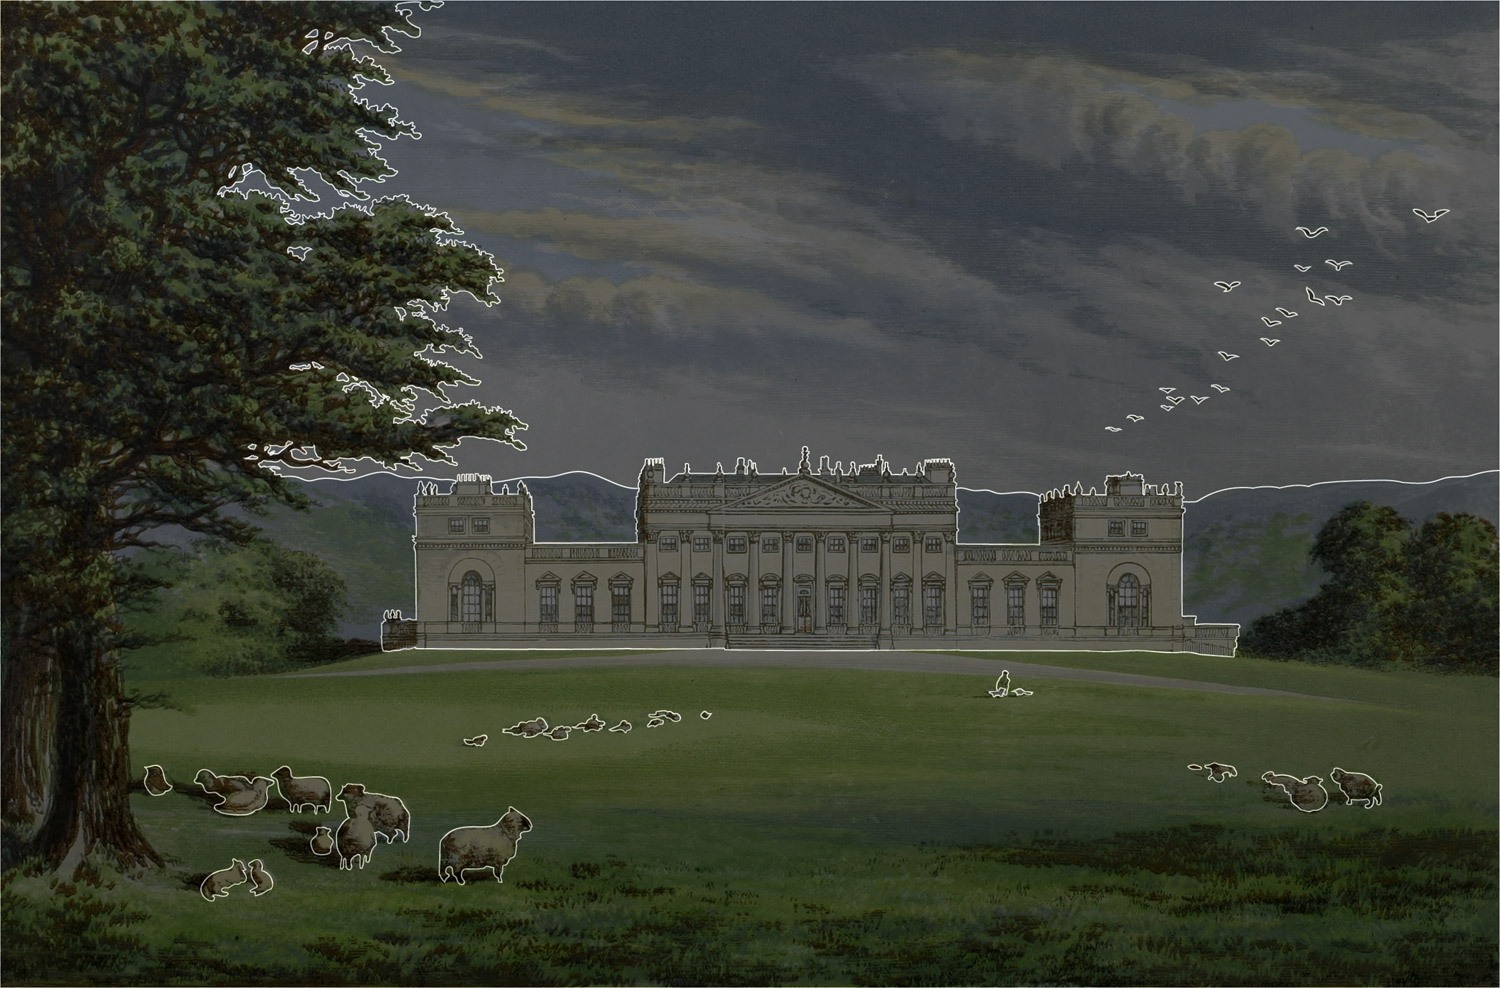 Outlined areas of Harewood House illustration